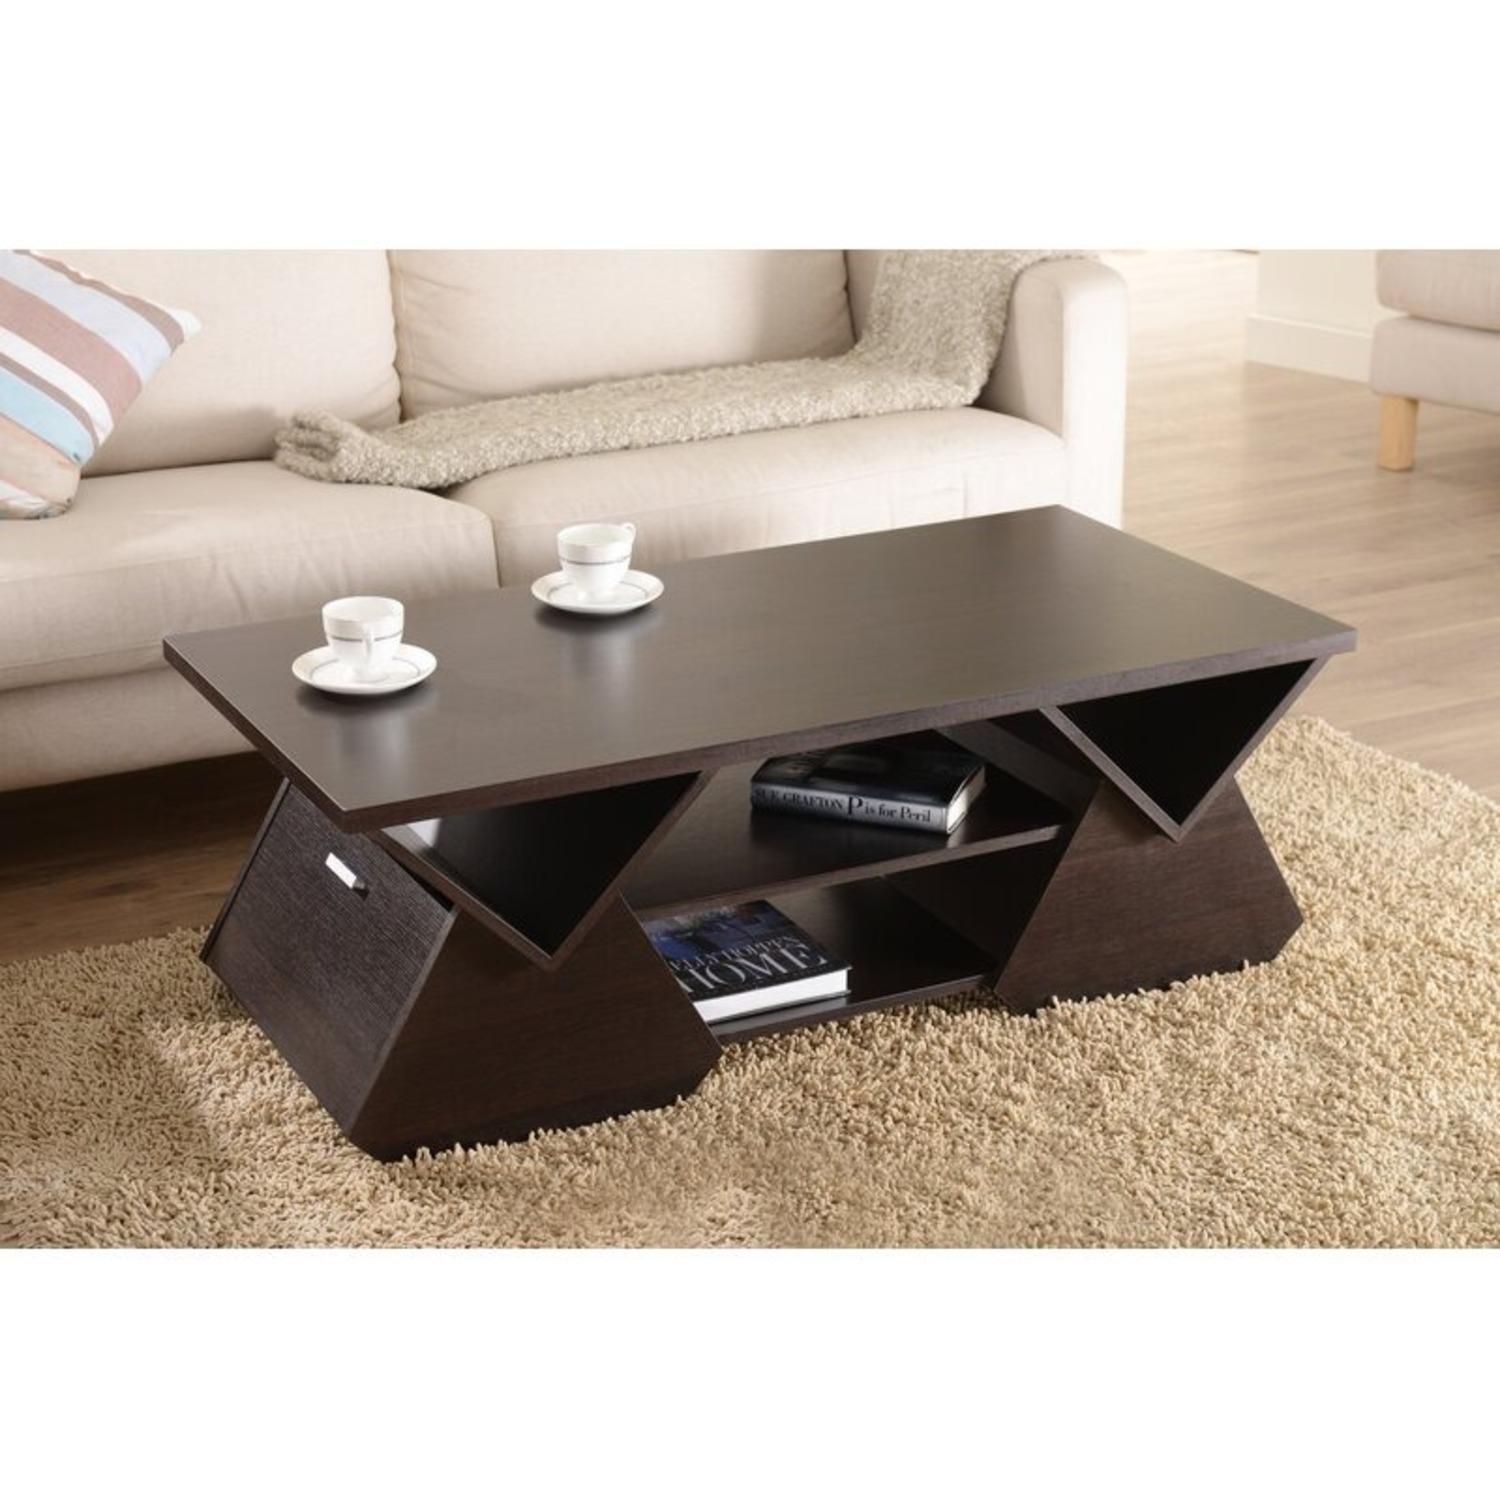 Wayfair Dark Brown Coffee Table with Storage - image-1